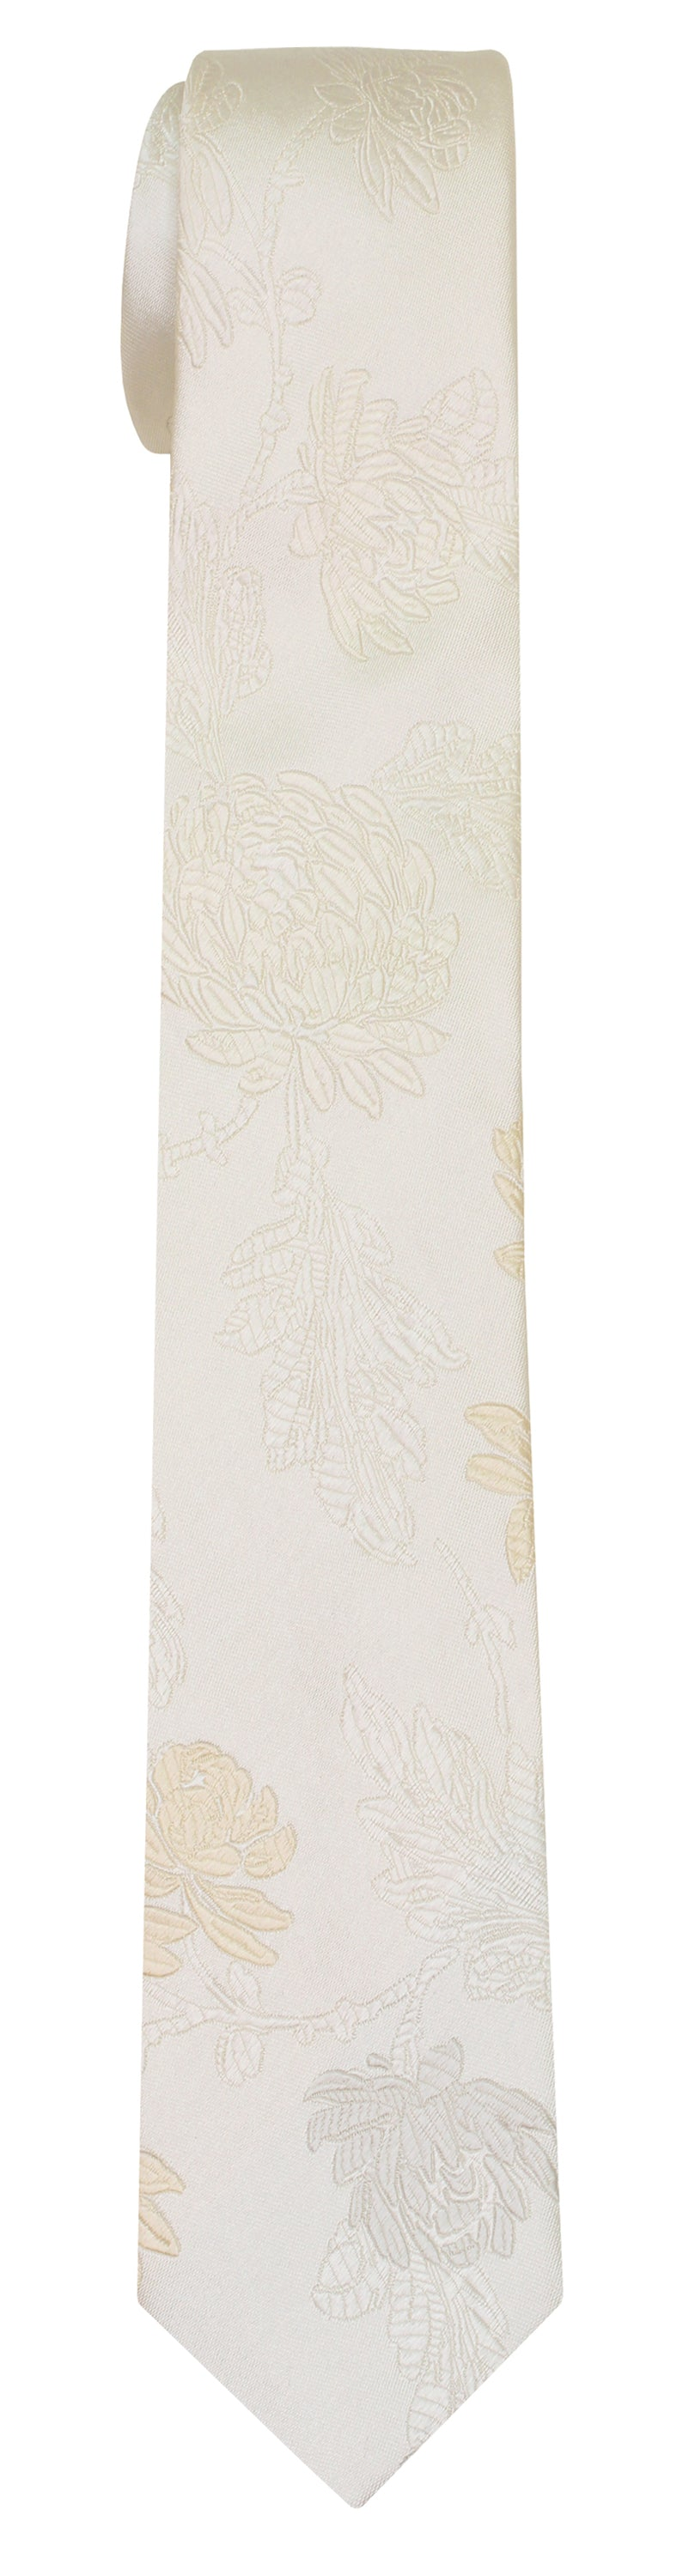 Mimi Fong English Garden Tie in Pearl